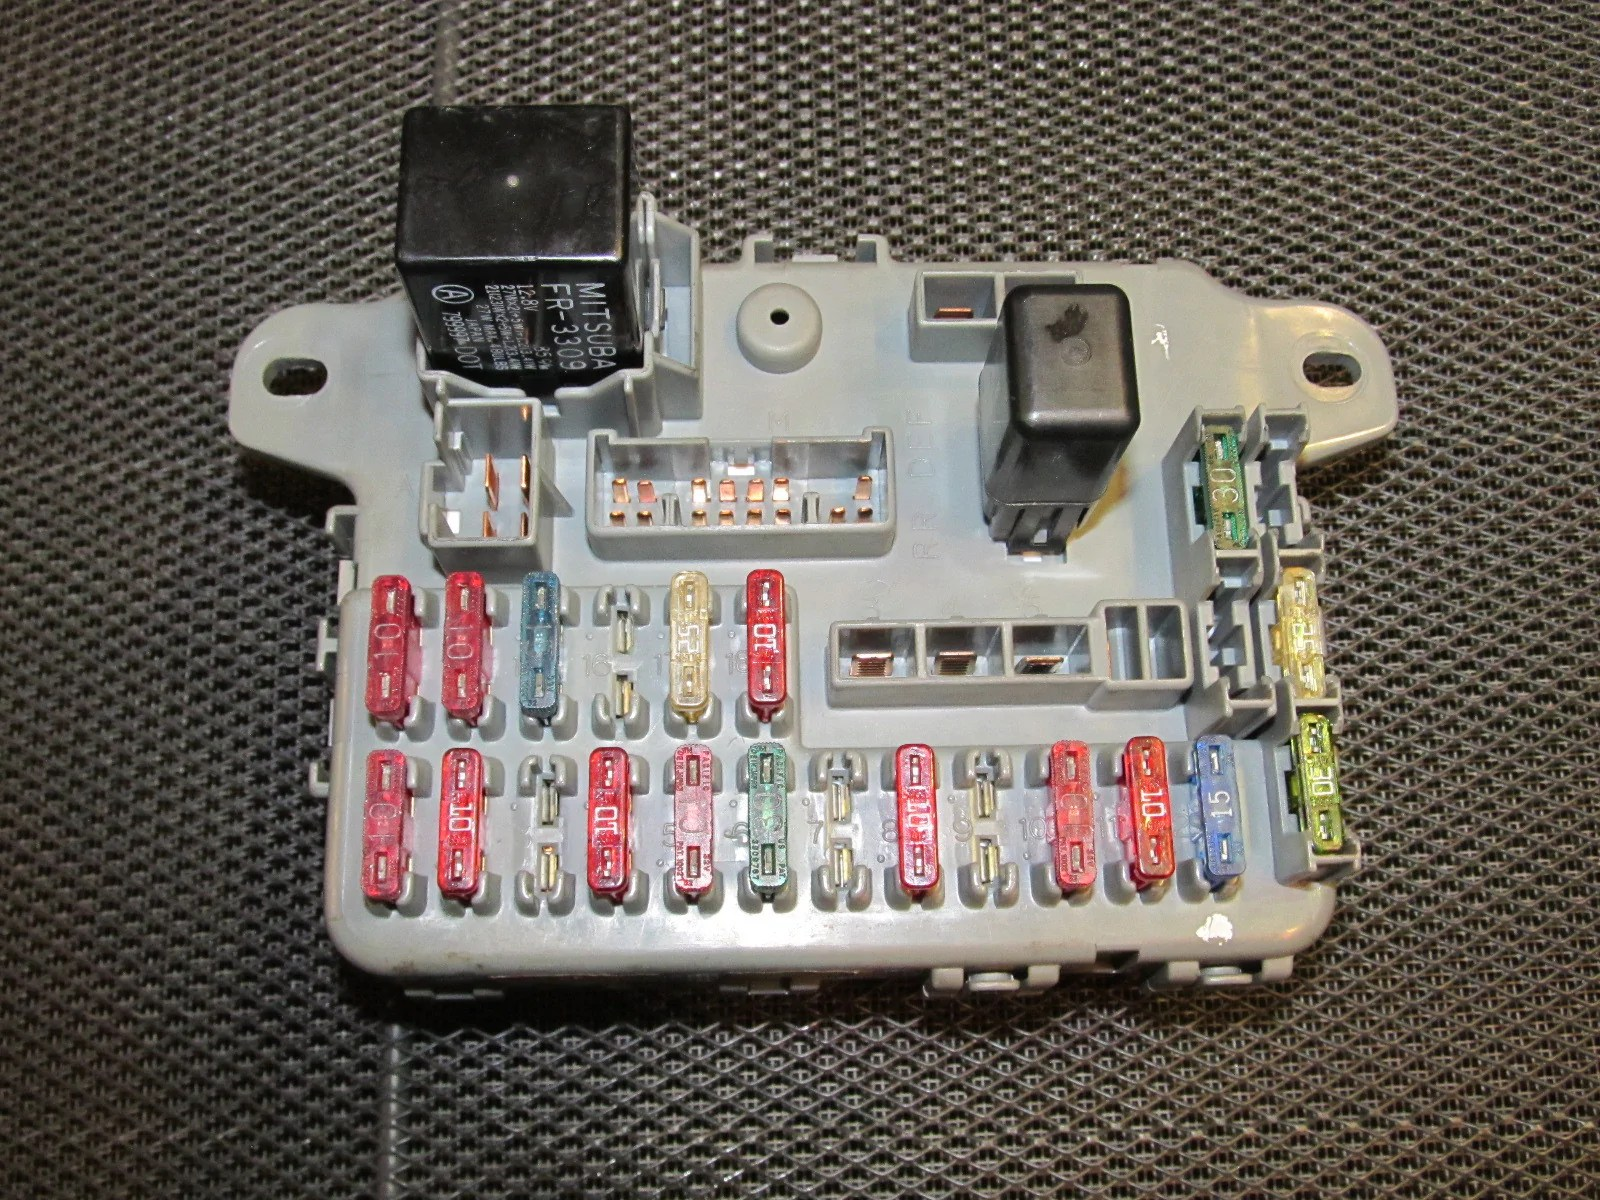 hight resolution of terminals wiring 88 89 1988 1989 civic main fuse relay box assy c motor engine compartment oem